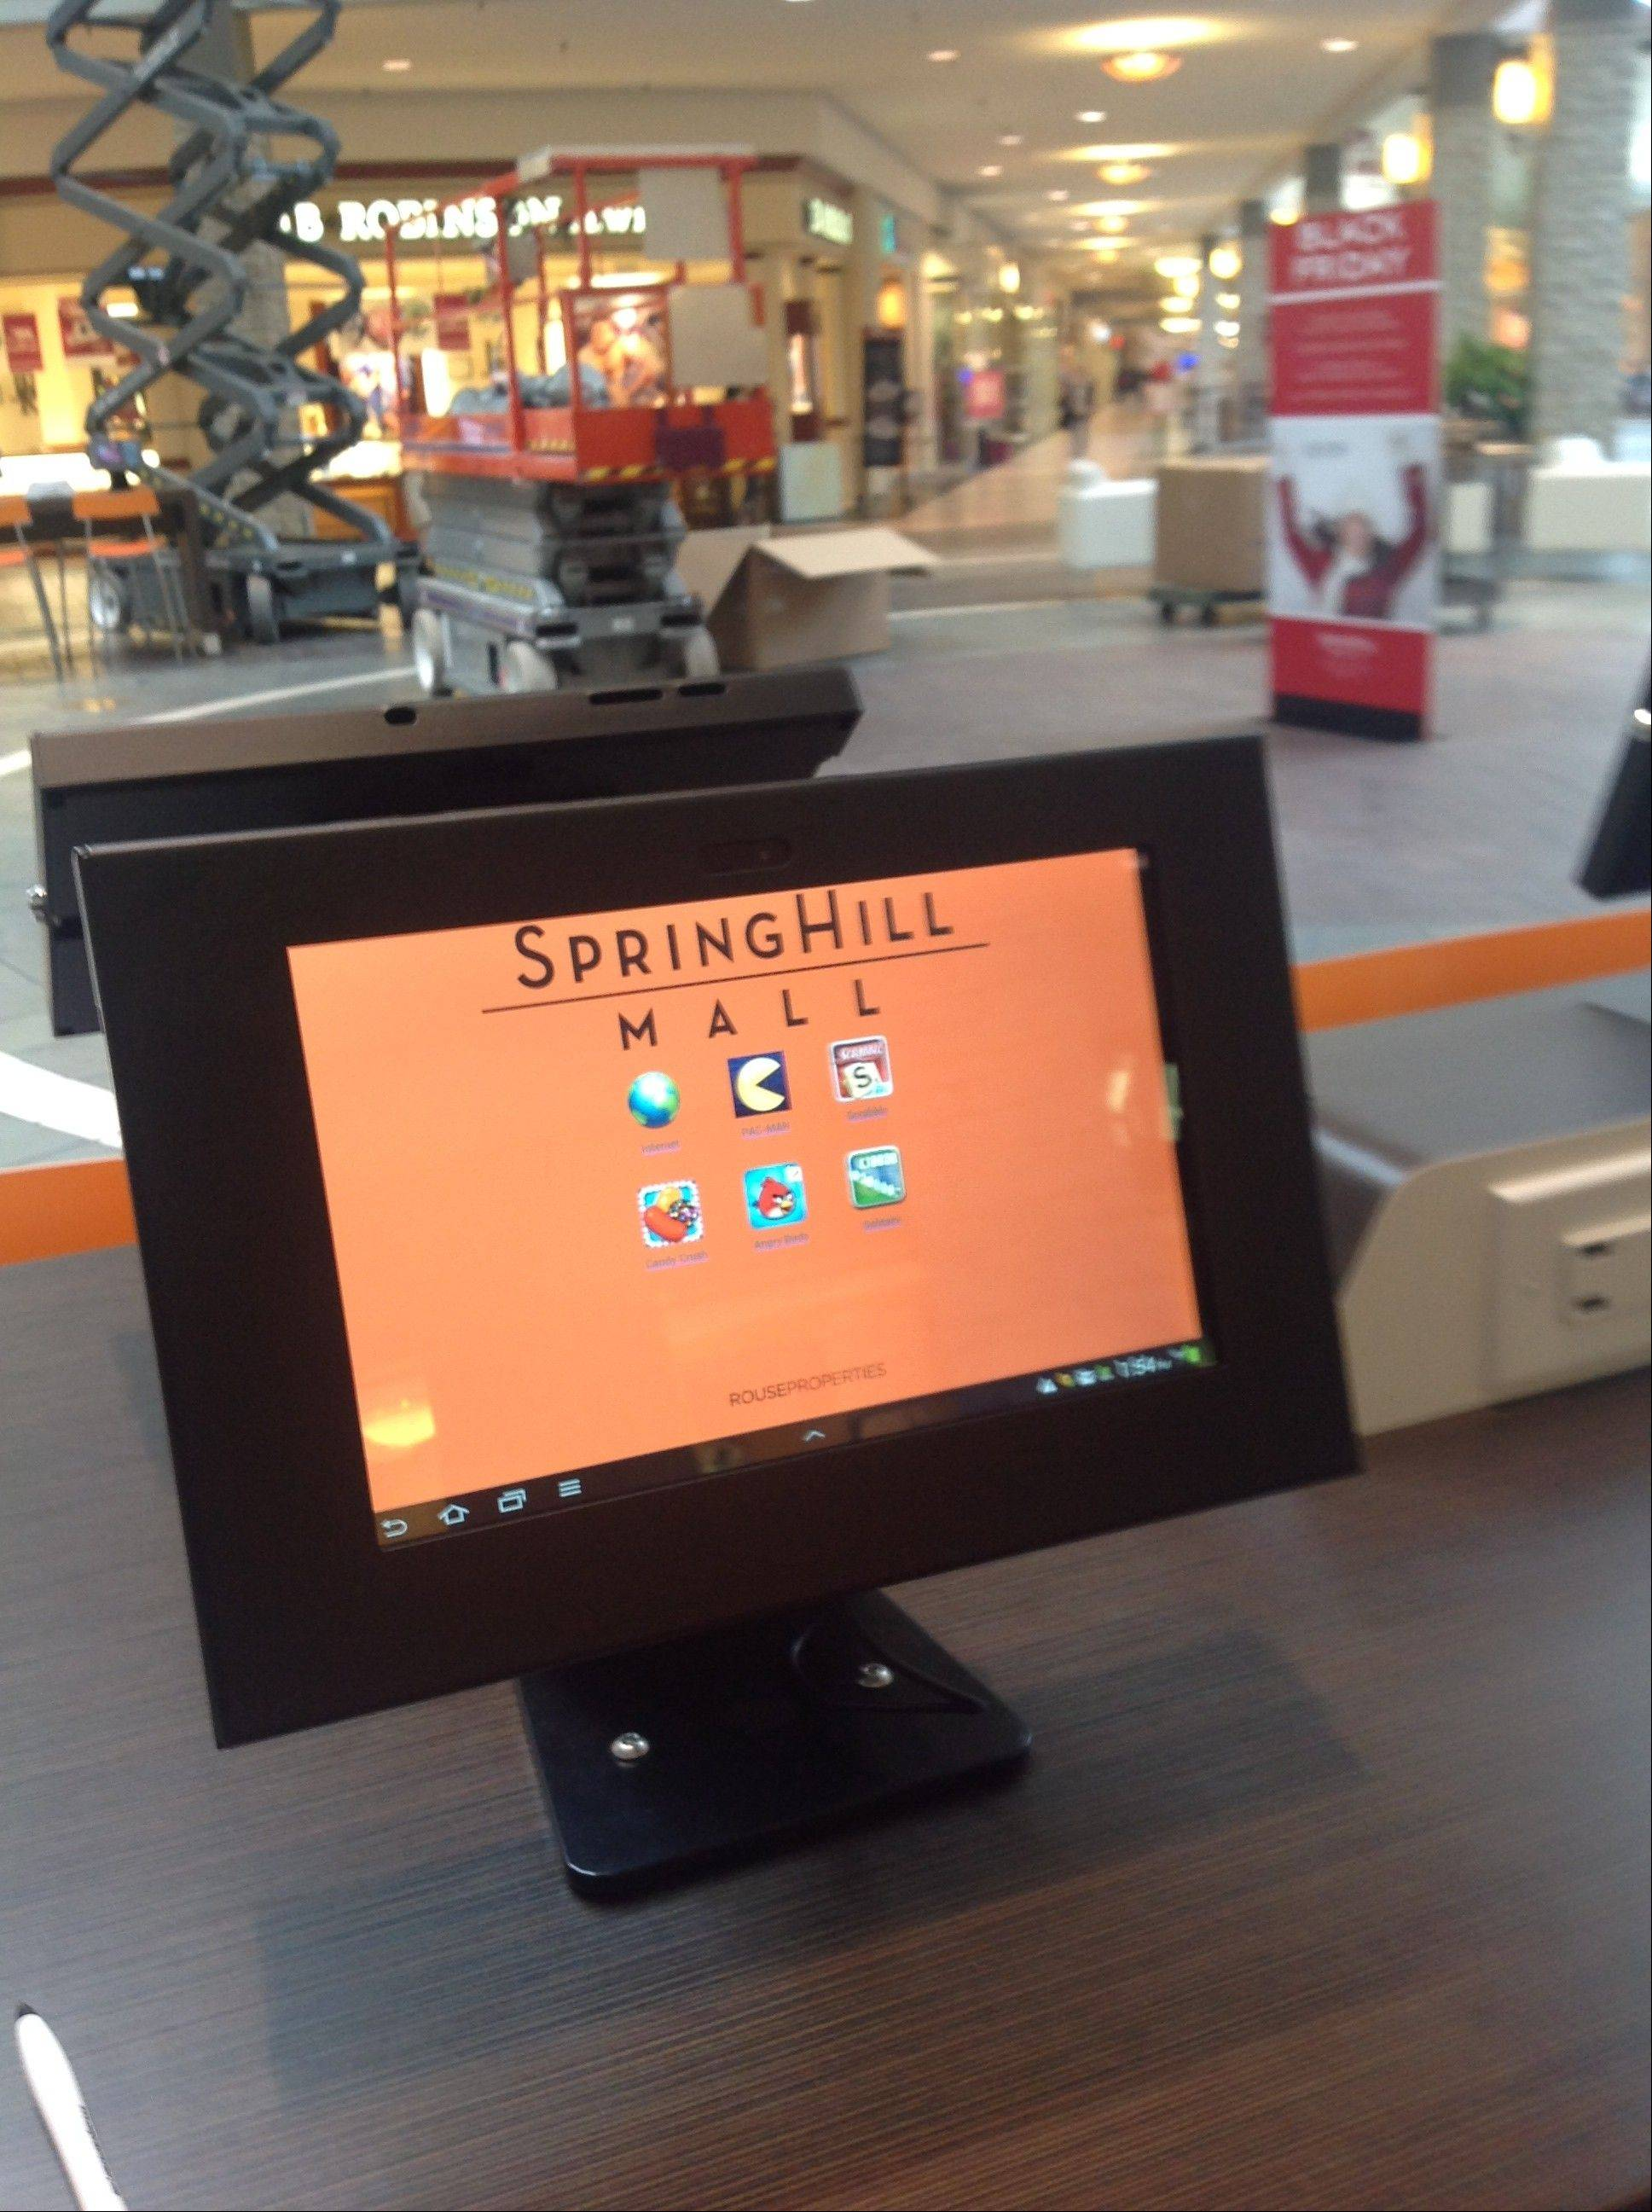 Spring Hill Mall, which straddles Carpentersville and West Dundee, recently added Wi-Fi and 32 tablets with Internet access. A mall official said the new elements are part of ongoing efforts to get shoppers to spend more time at Spring Hill Mall.